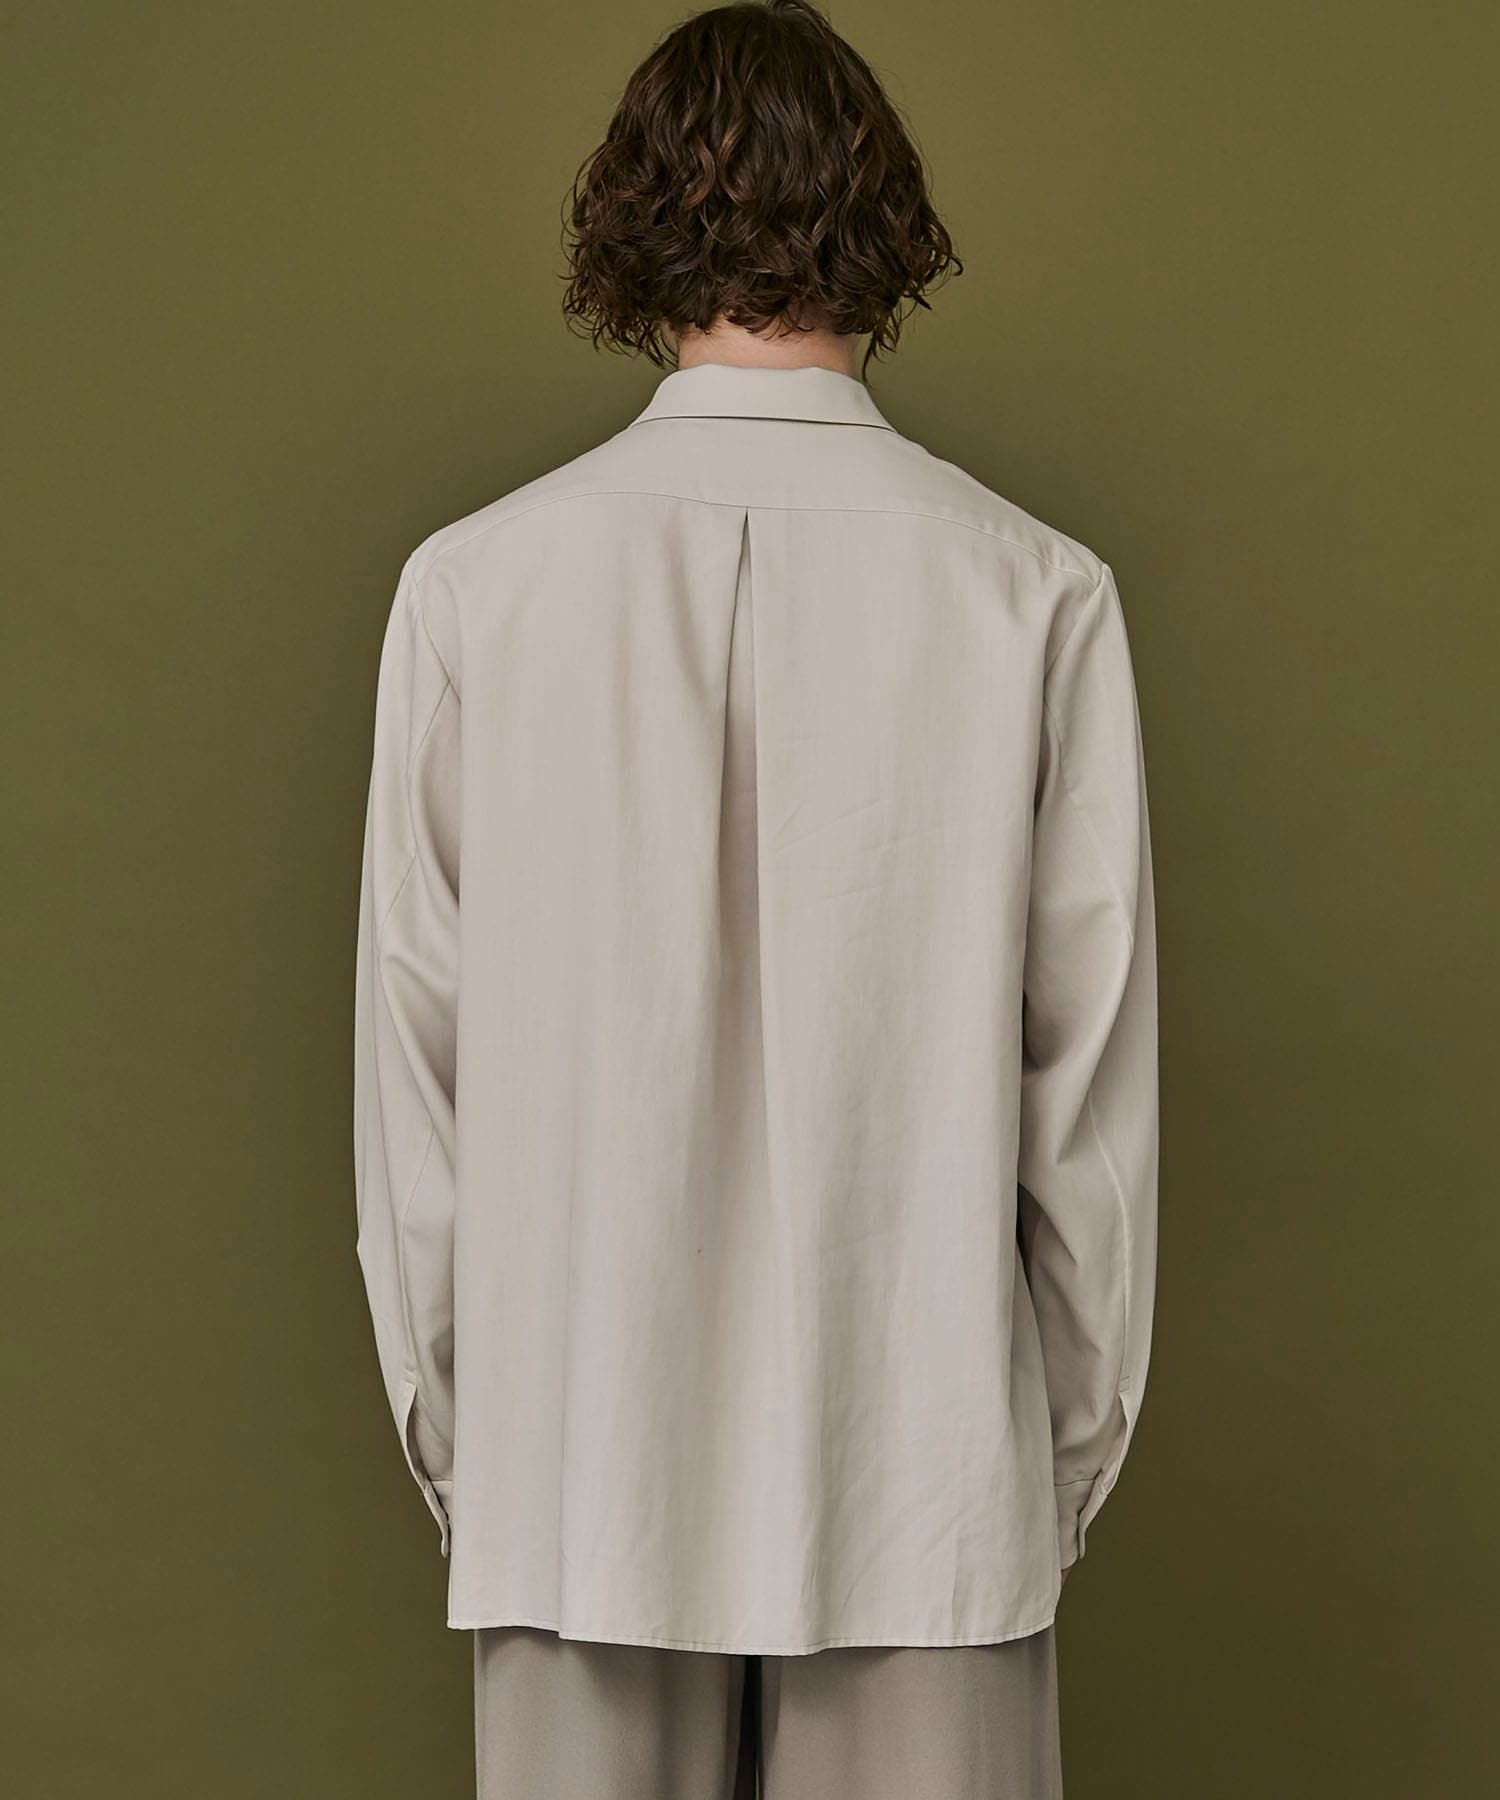 Pullover Layer Shirt ETHOSENS